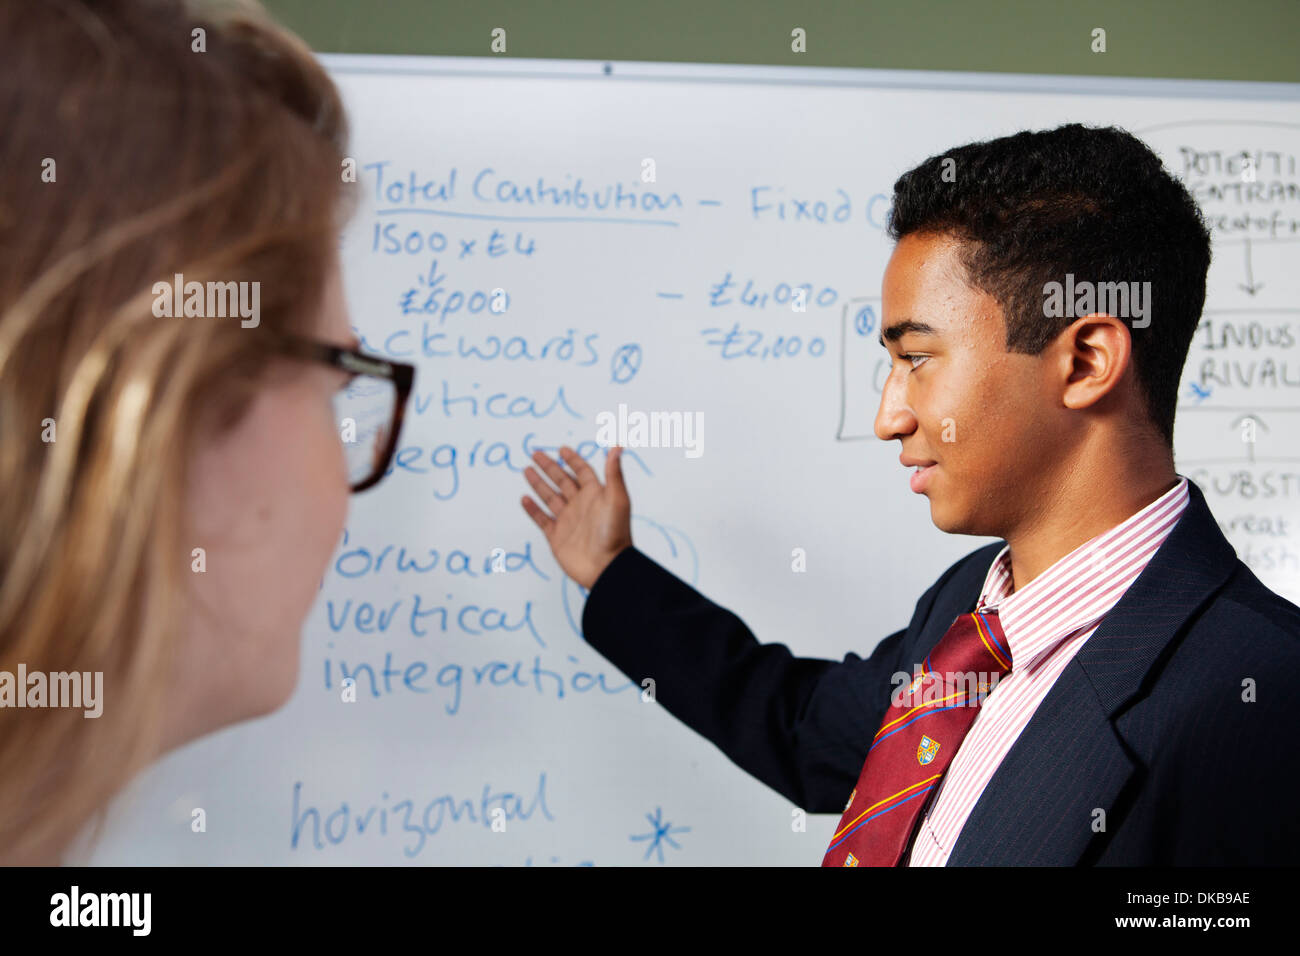 Schoolboy presenting ideas in class - Stock Image